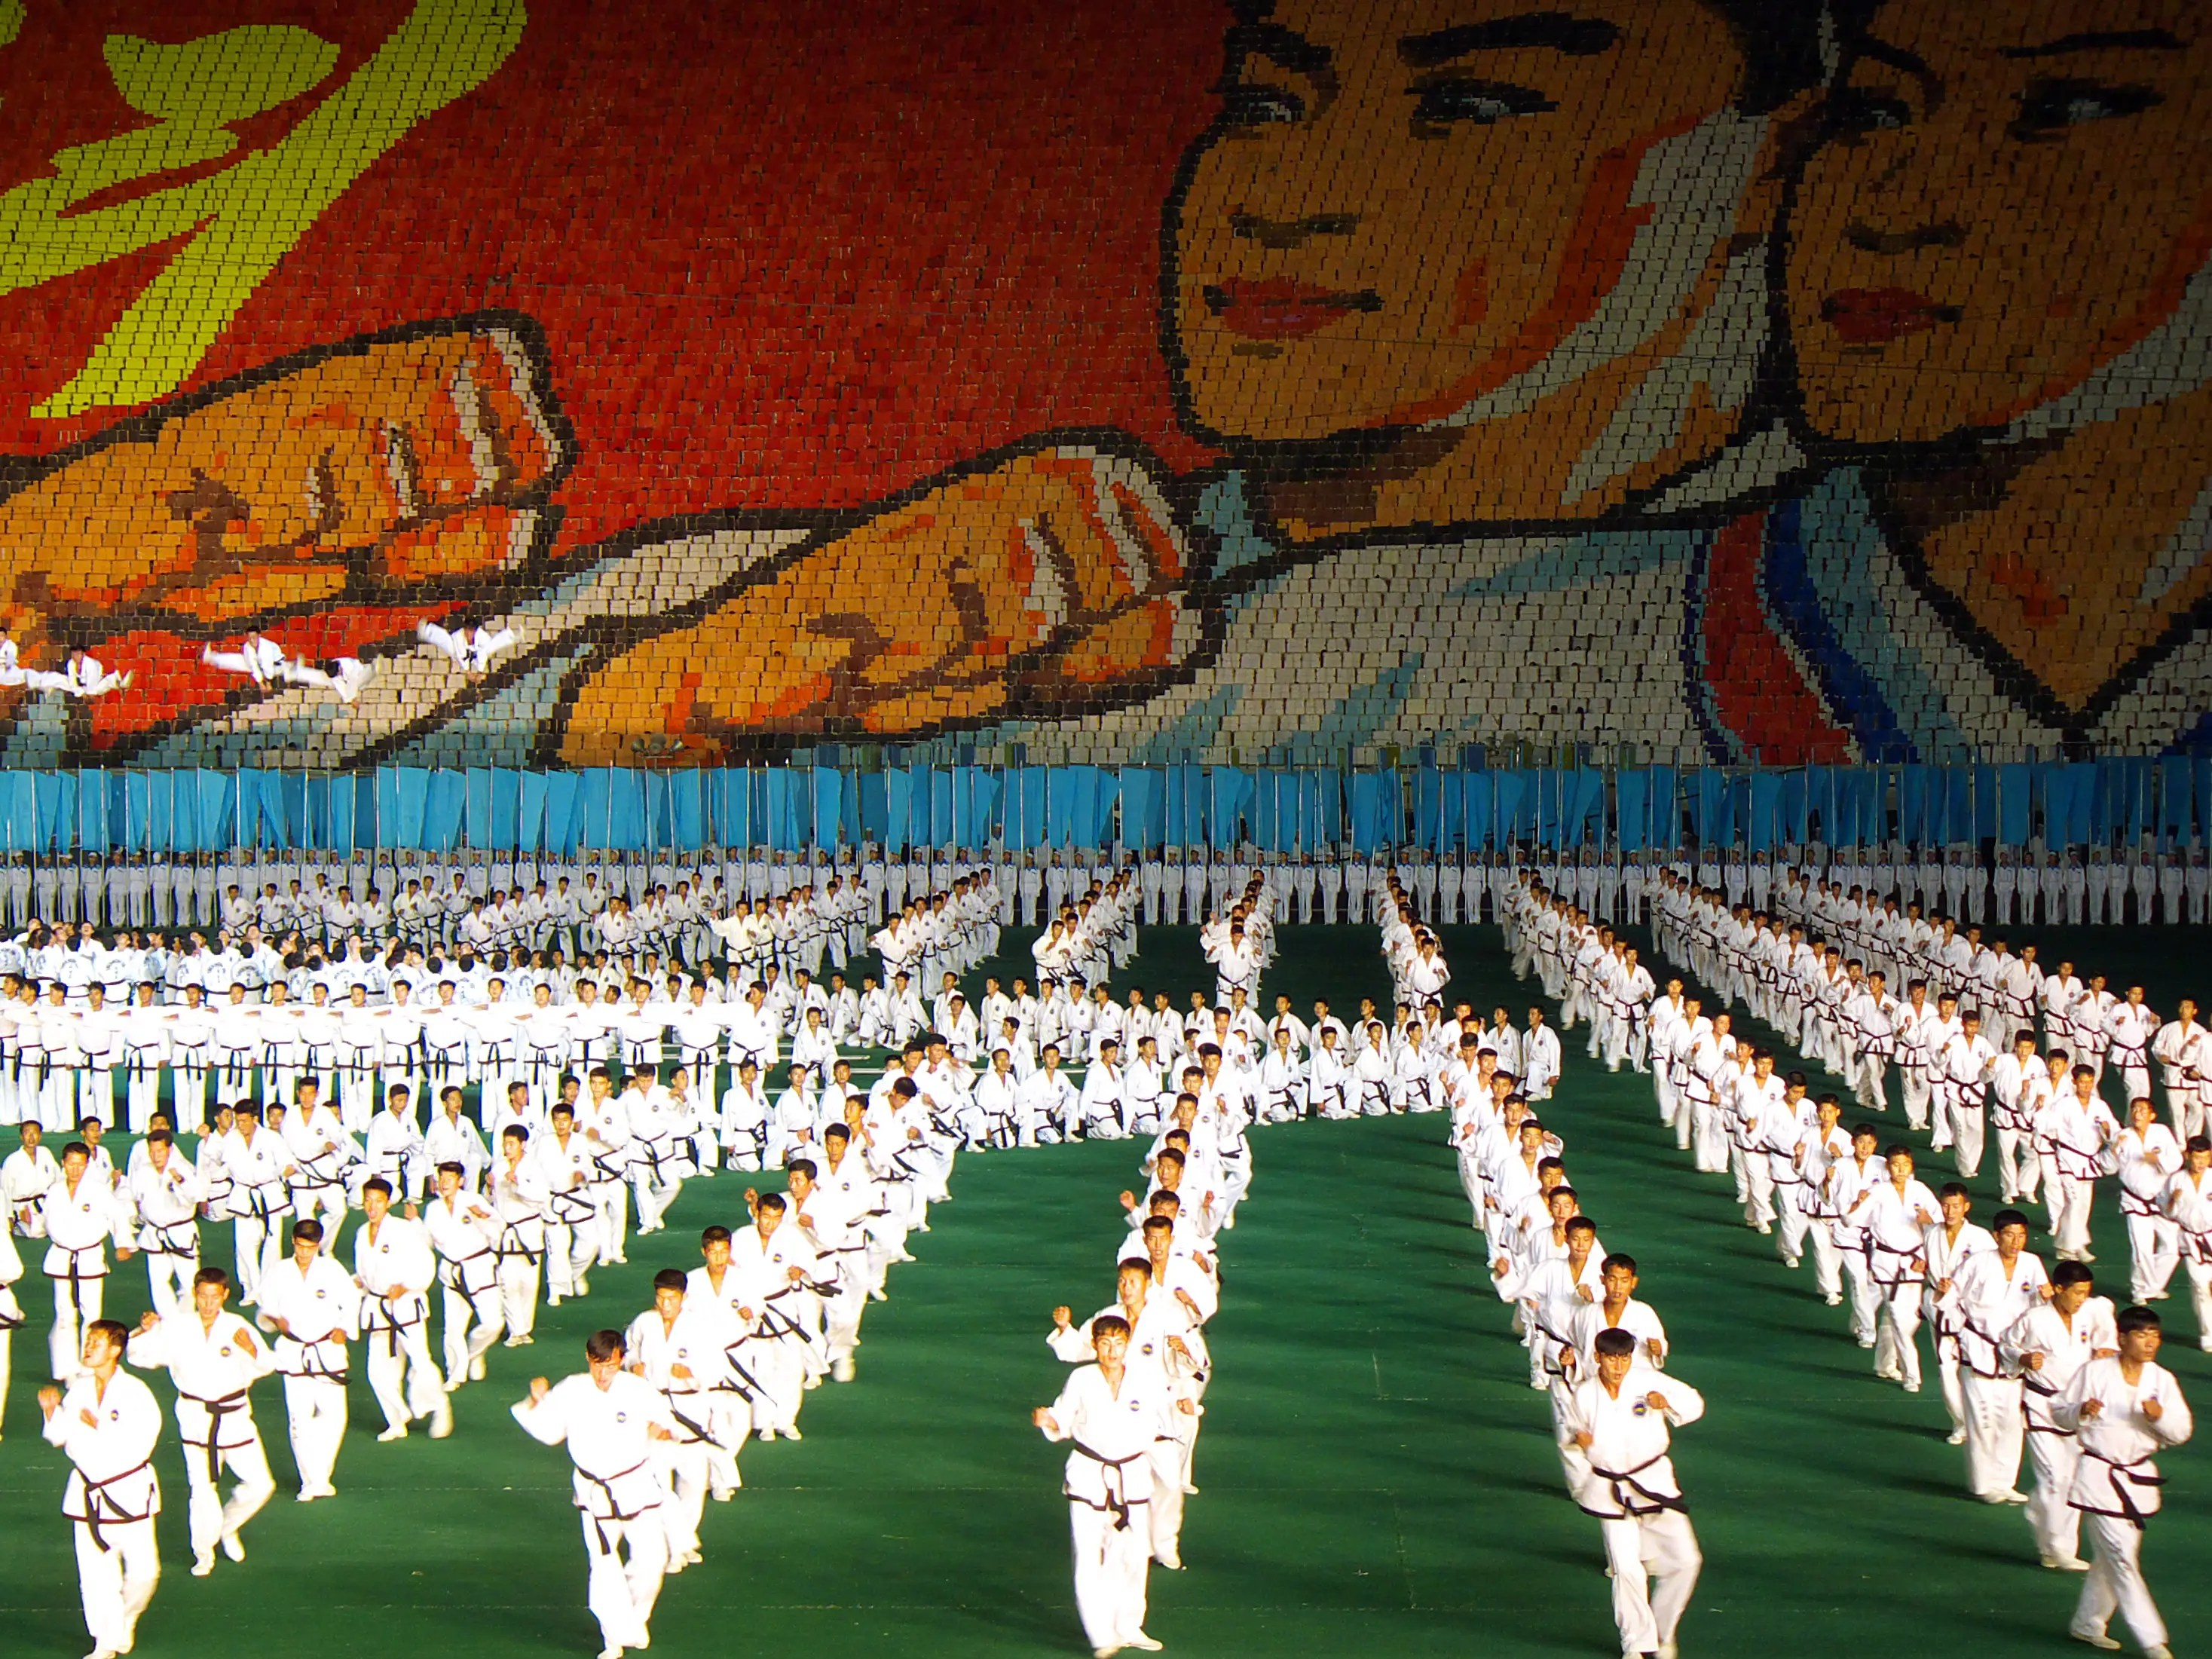 There are over 24 million people living inside North Korea.